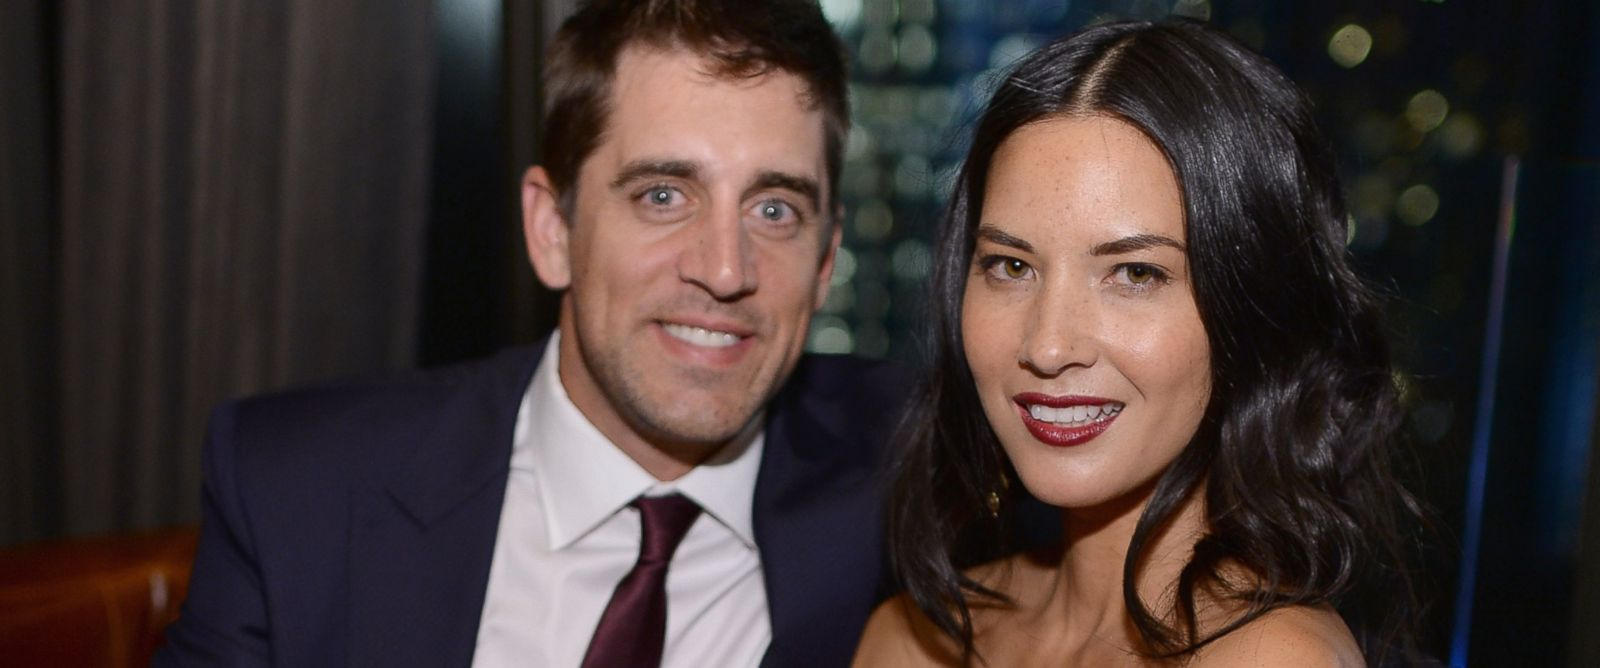 NFL's Aaron Rodgers Yellow Fever Caused Rift with Family ...